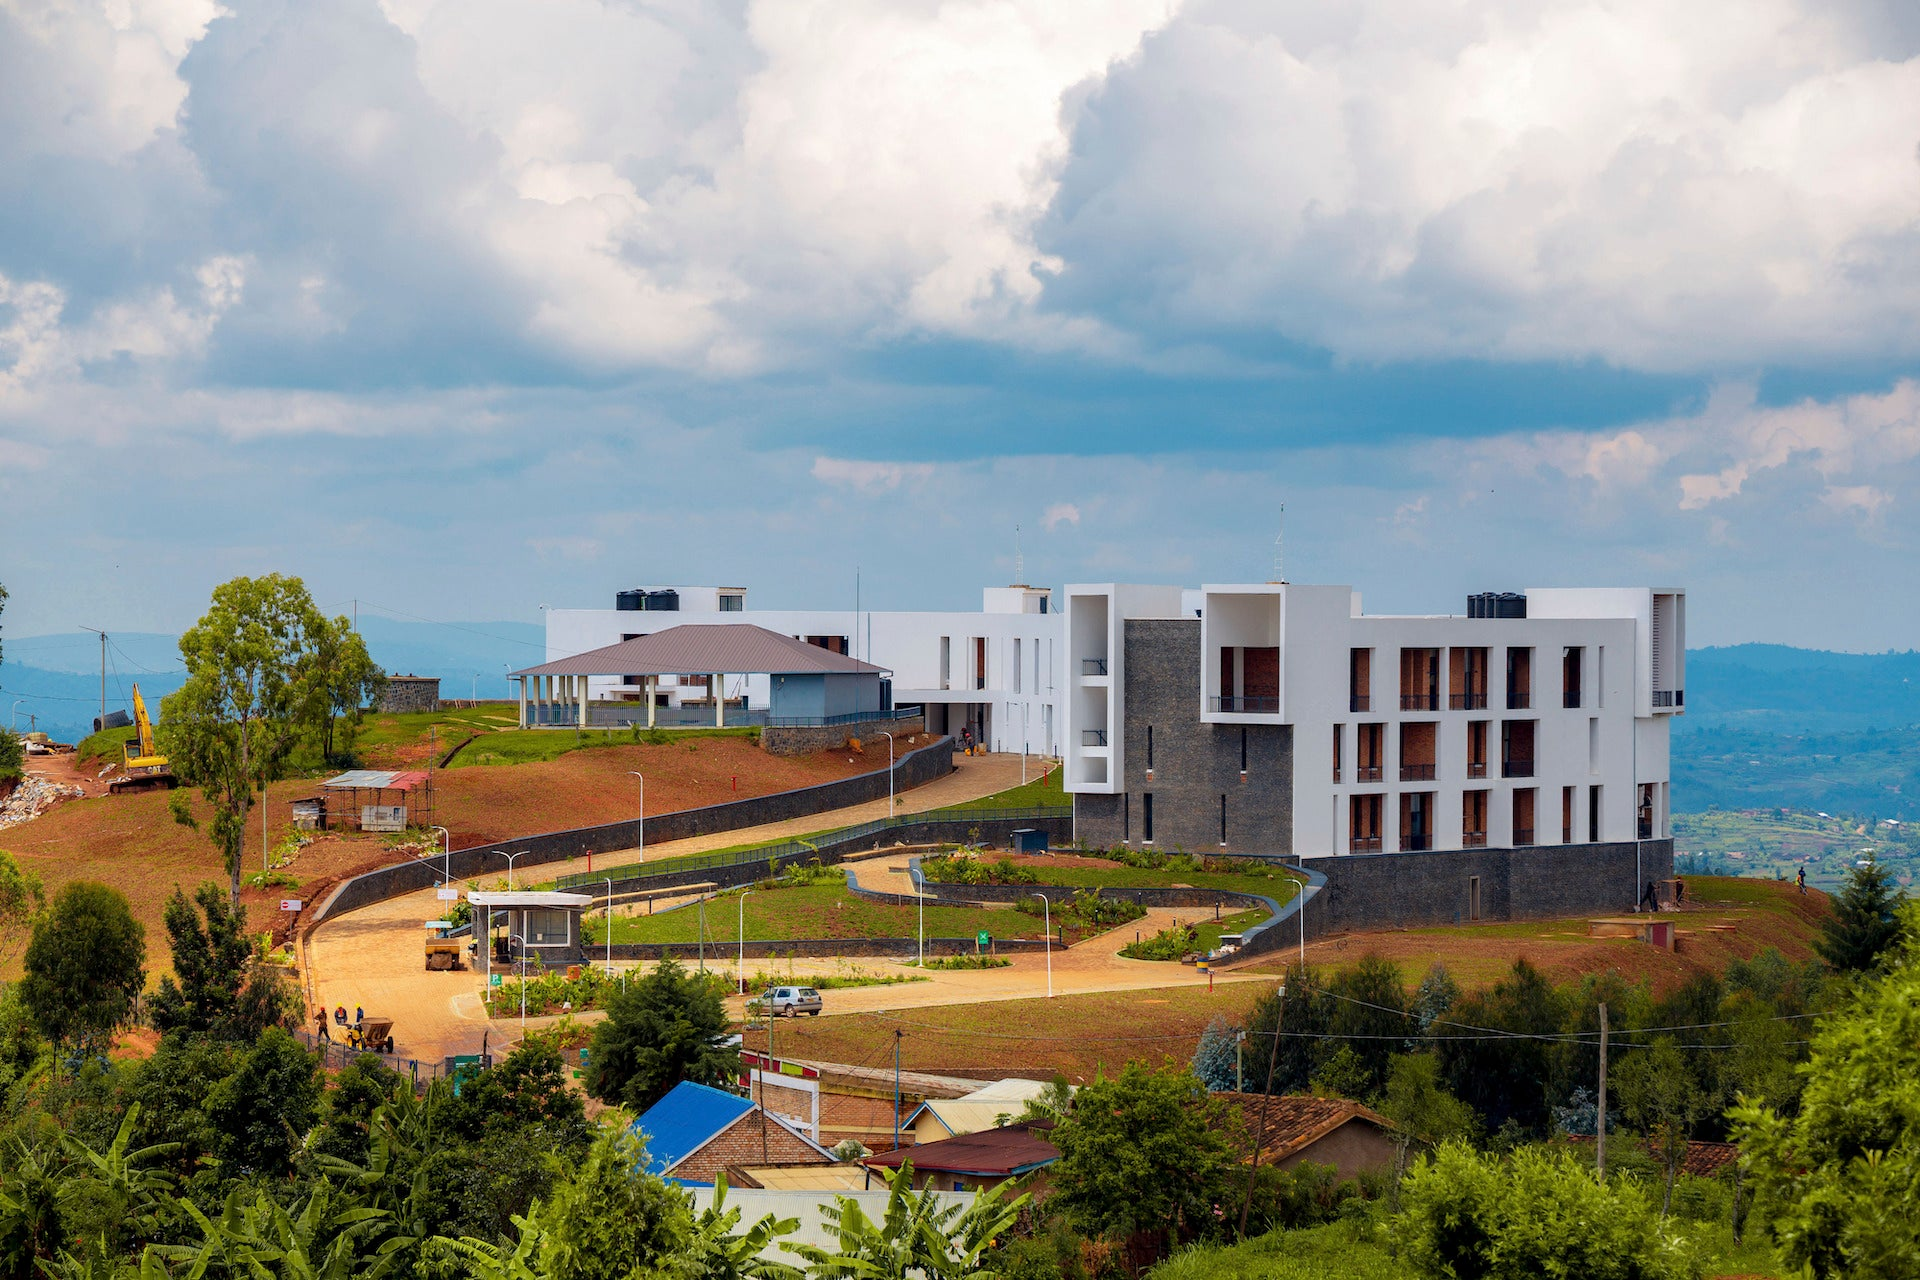 Munini District Hospital. Munini, Rwanda. Beginning in 2012, MASS worked with the Rwandan Ministry of Health to develop a set of hospital design standards to improve health outcomes that could be adapted to the specific needs of each District's context, demographics, and programmatic requirements. Photo © MASS Design Group